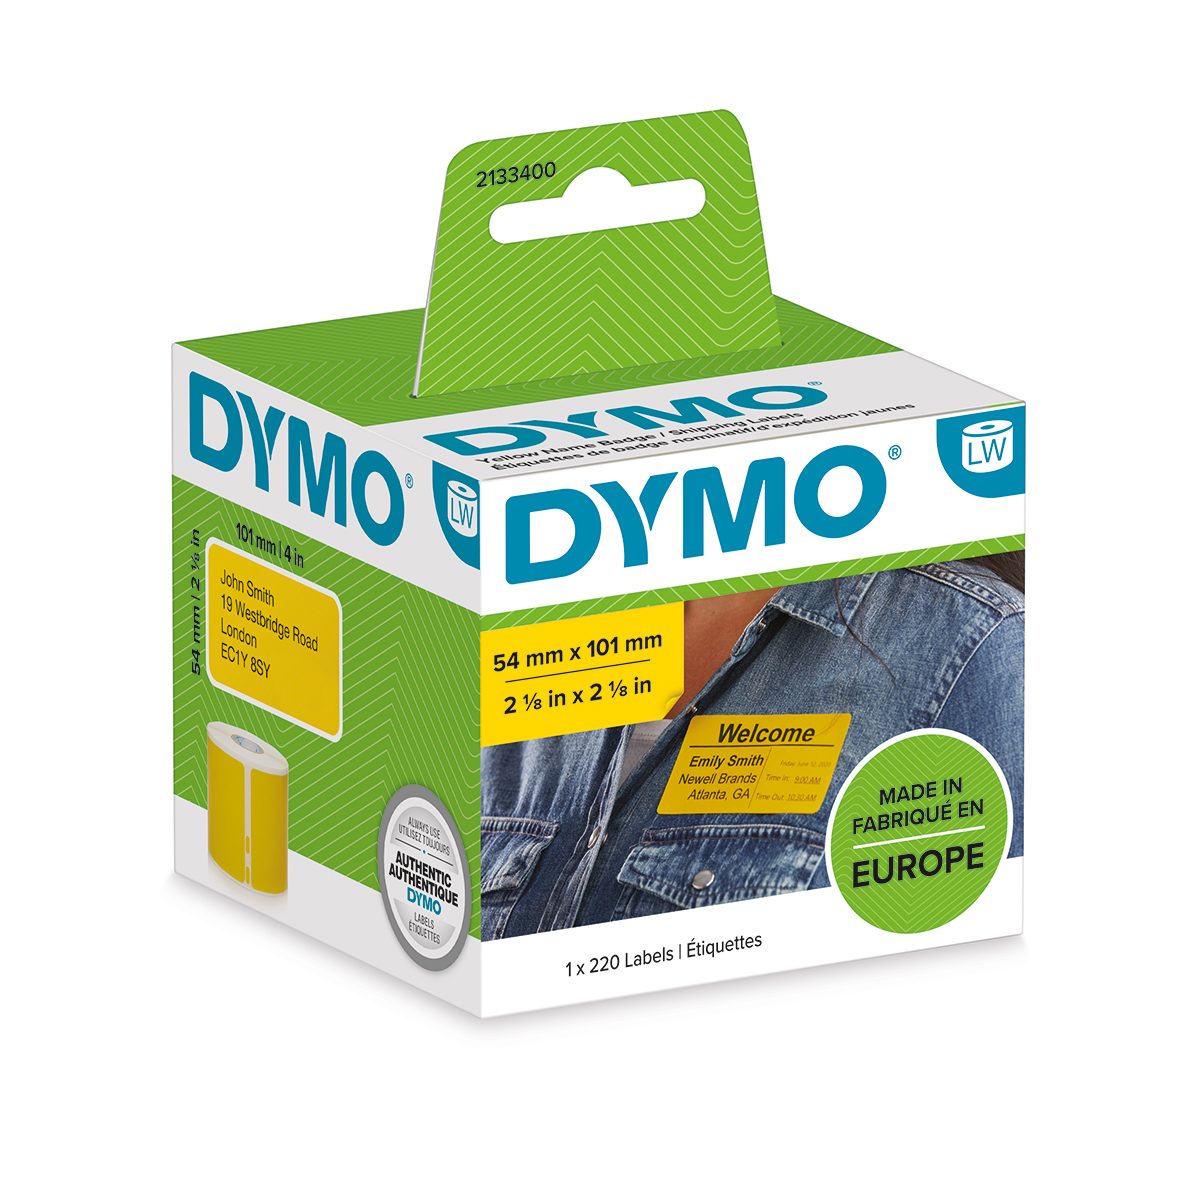 Dymo 2133400 54mm x 101mm Shipping and Name Badge Black on Yellow